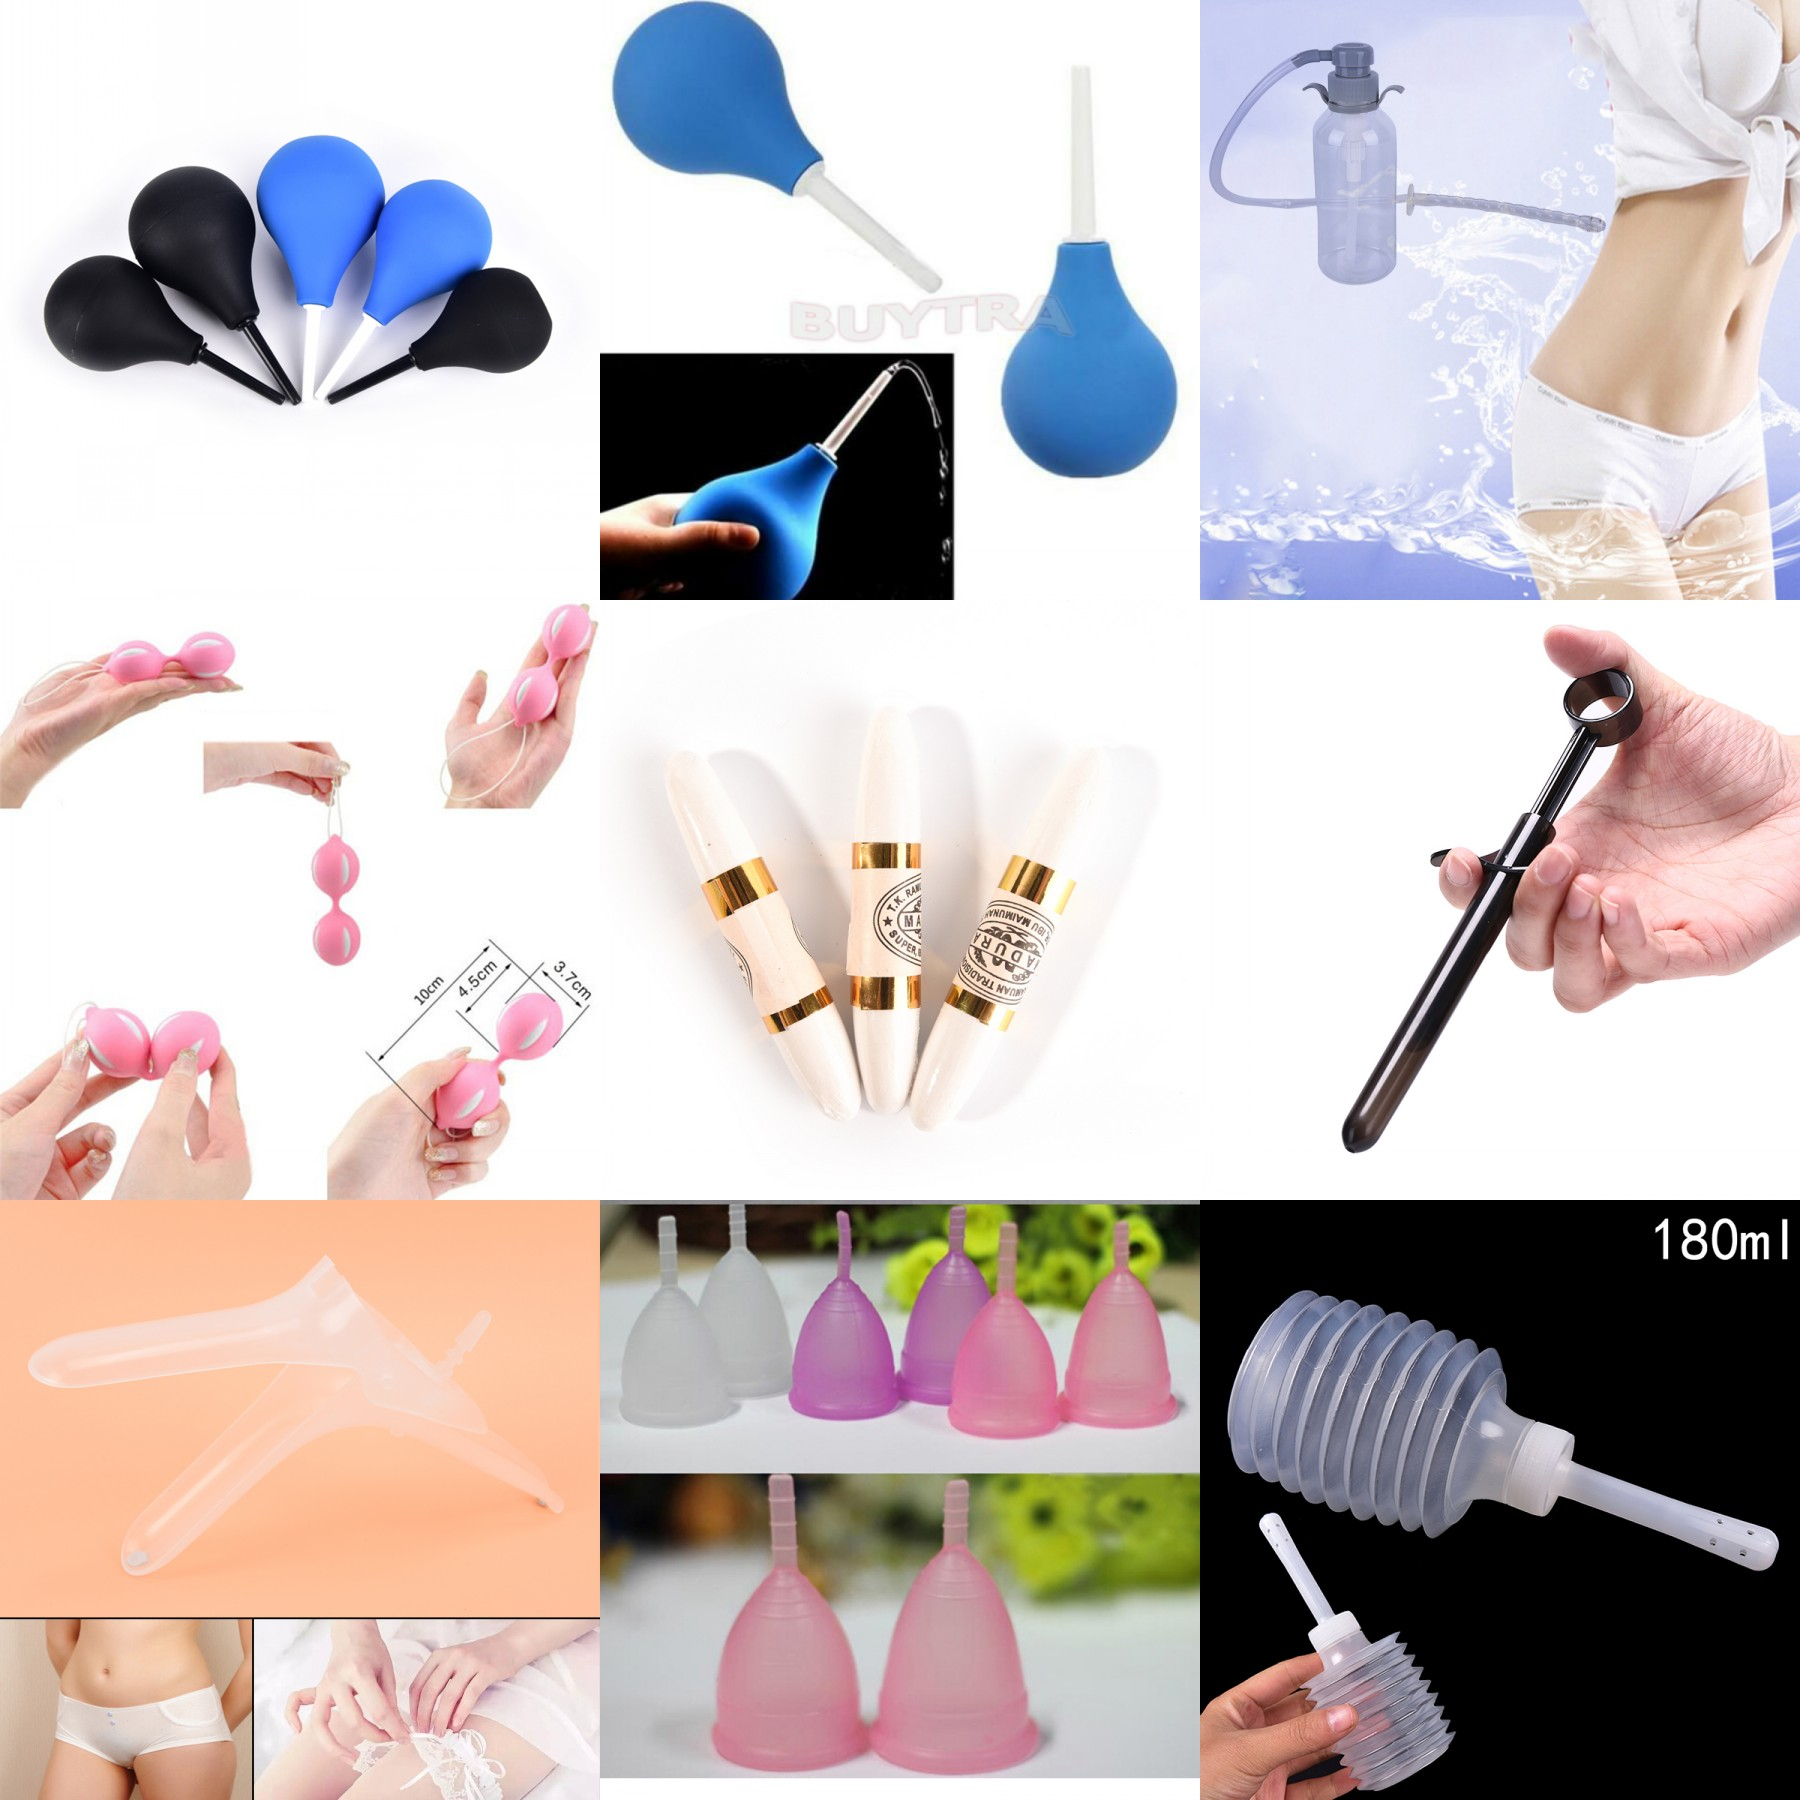 18 STYLE Anal Vaginal Cleaner Medical Silicone Ball Enema Cleaning Douche Body For Men And Women Adultes Health Cleaner